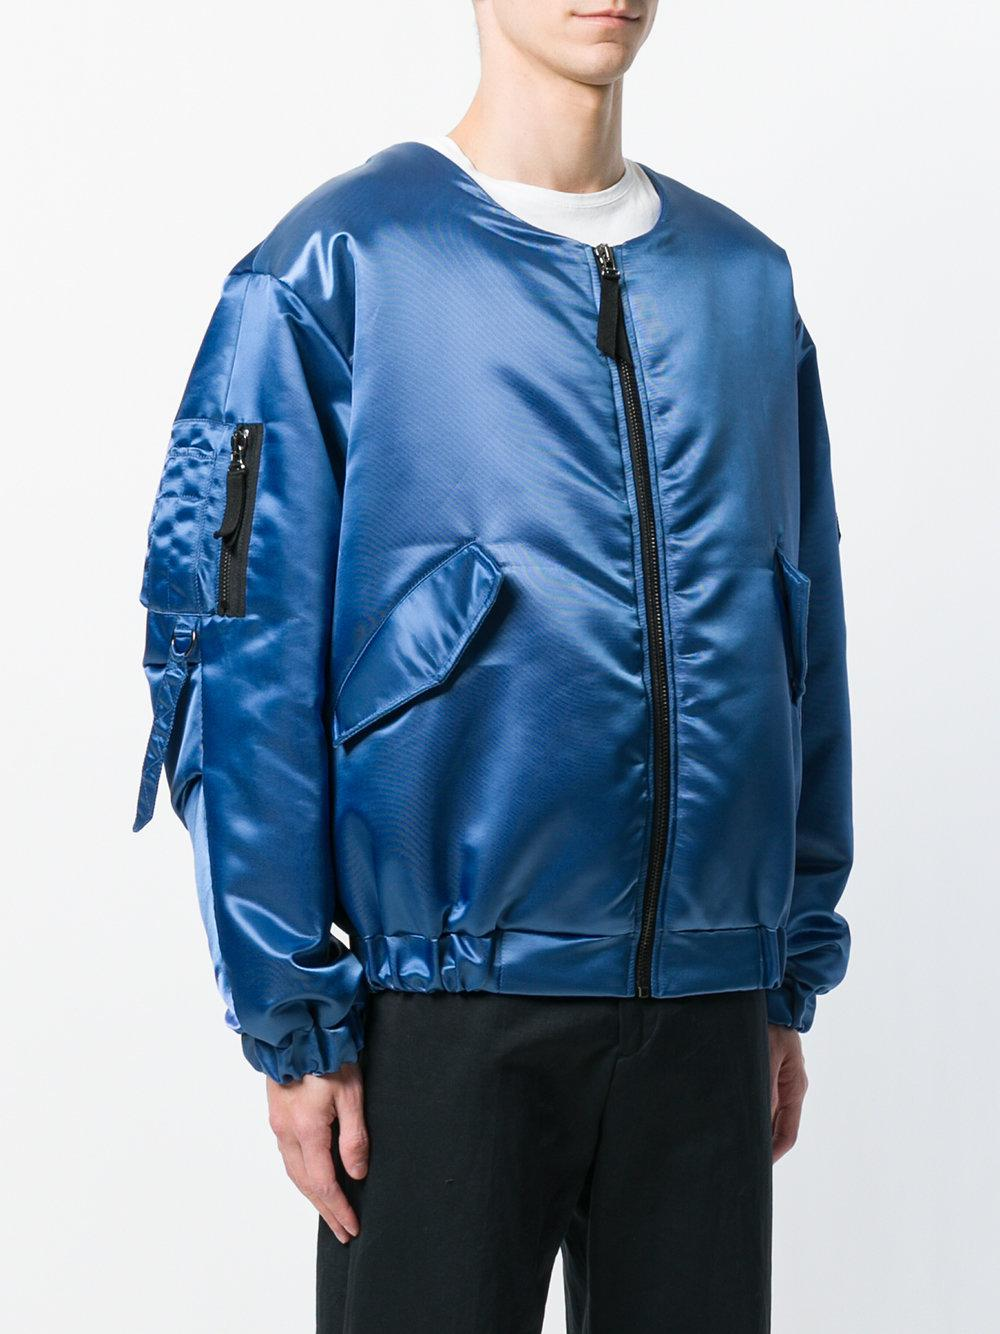 Paura Synthetic Oversized Bomber Jacket in Blue for Men